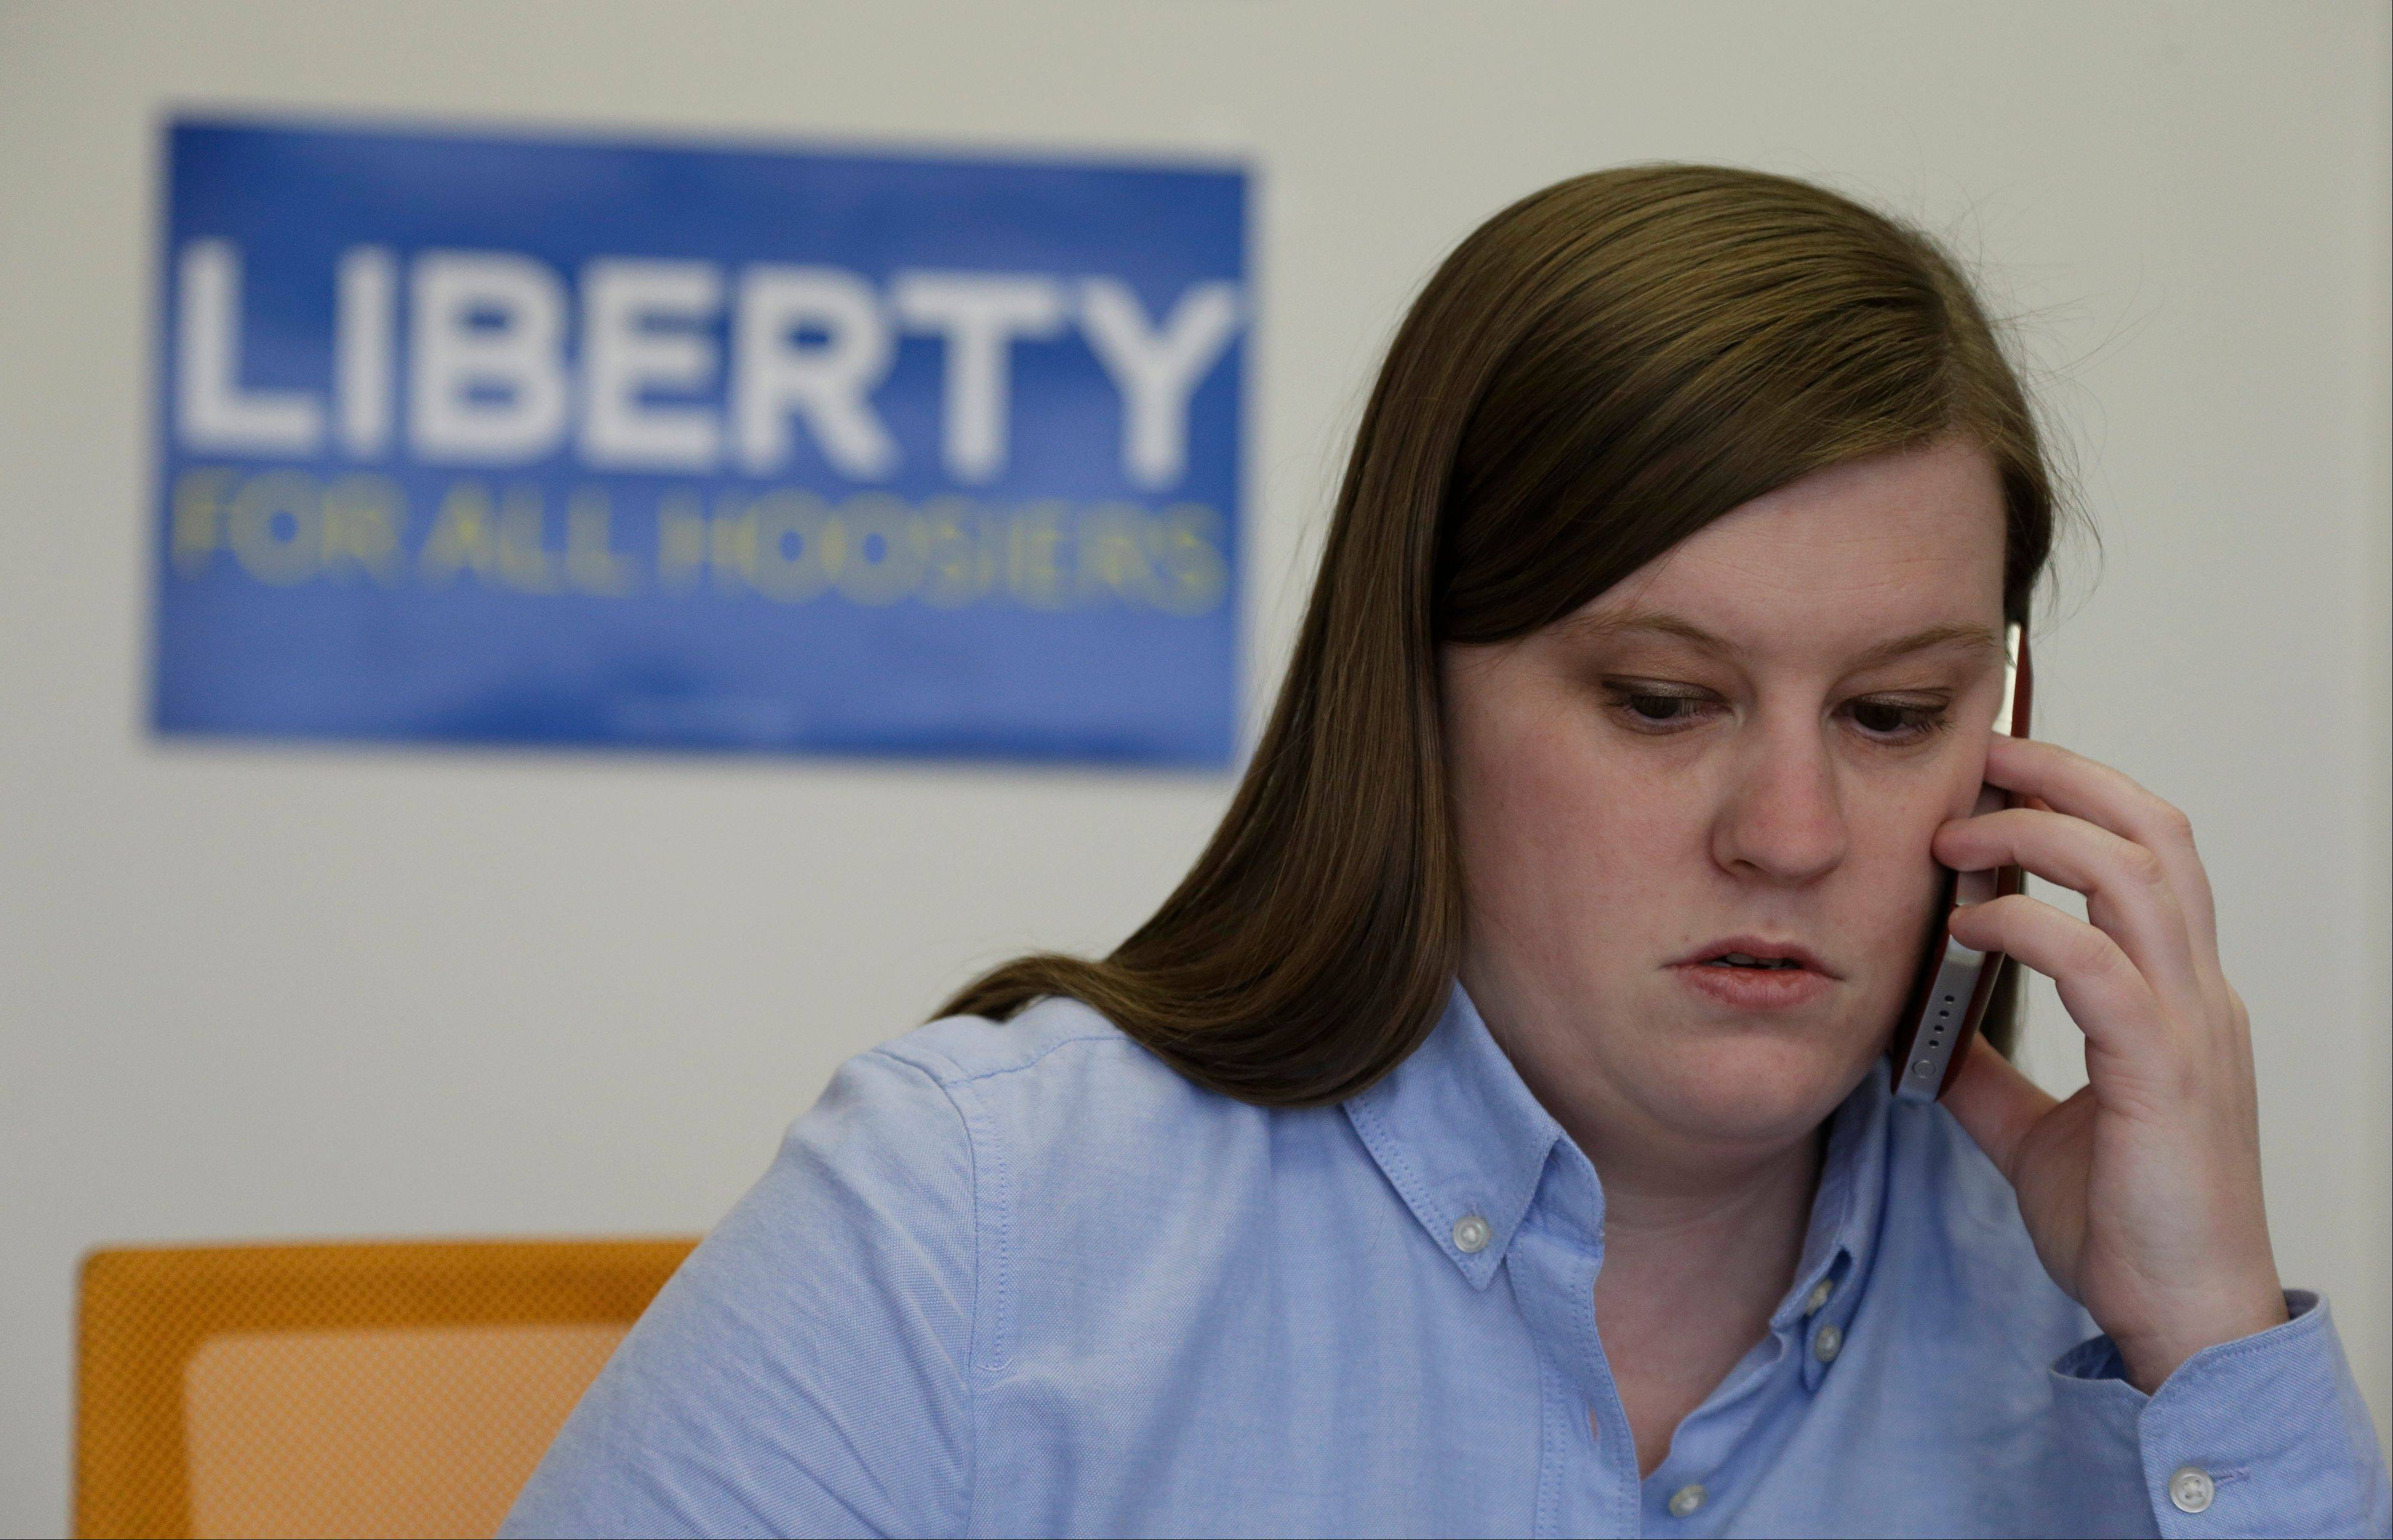 Megan Robertson, campaign manager for Freedom Indiana, makes a phone call in Indianapolis. Indiana lawmakers will decide whether to ask voters to amend the constitution to ban same-sex marriage when they reconvene in January.